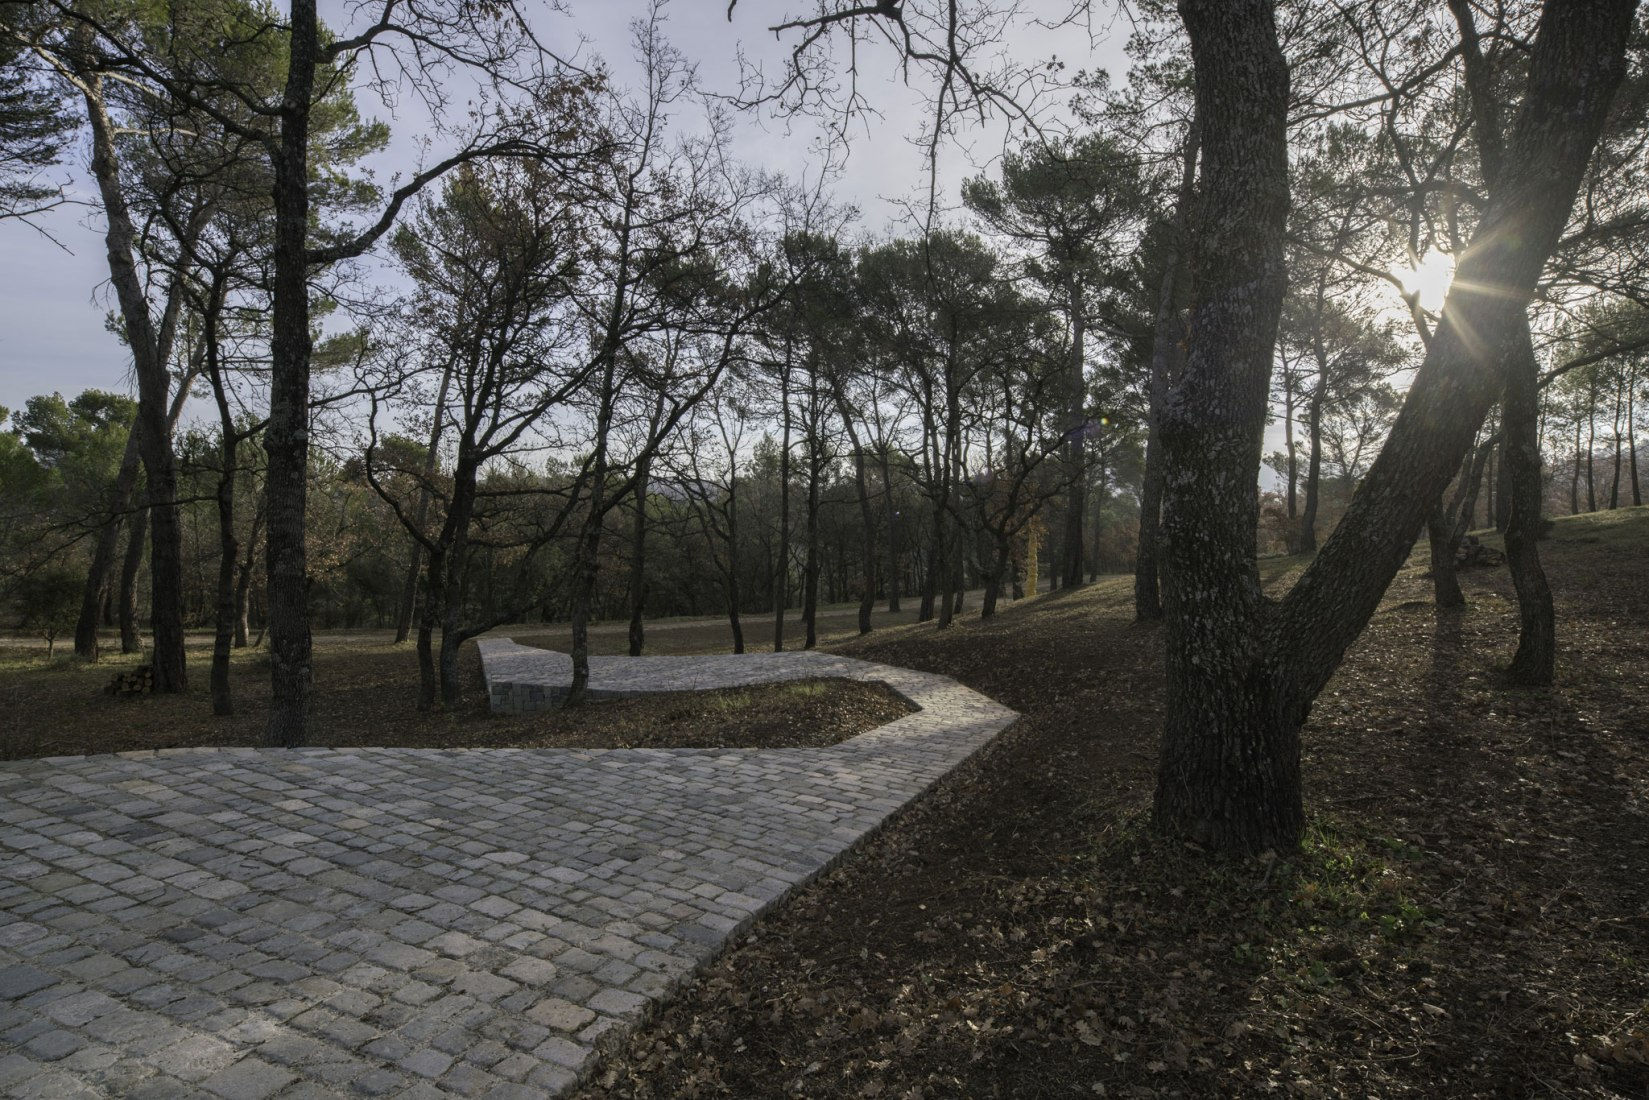 Ruyi Path by Ai Weiwei in Château La Coste. Image © Wearecontent(s)